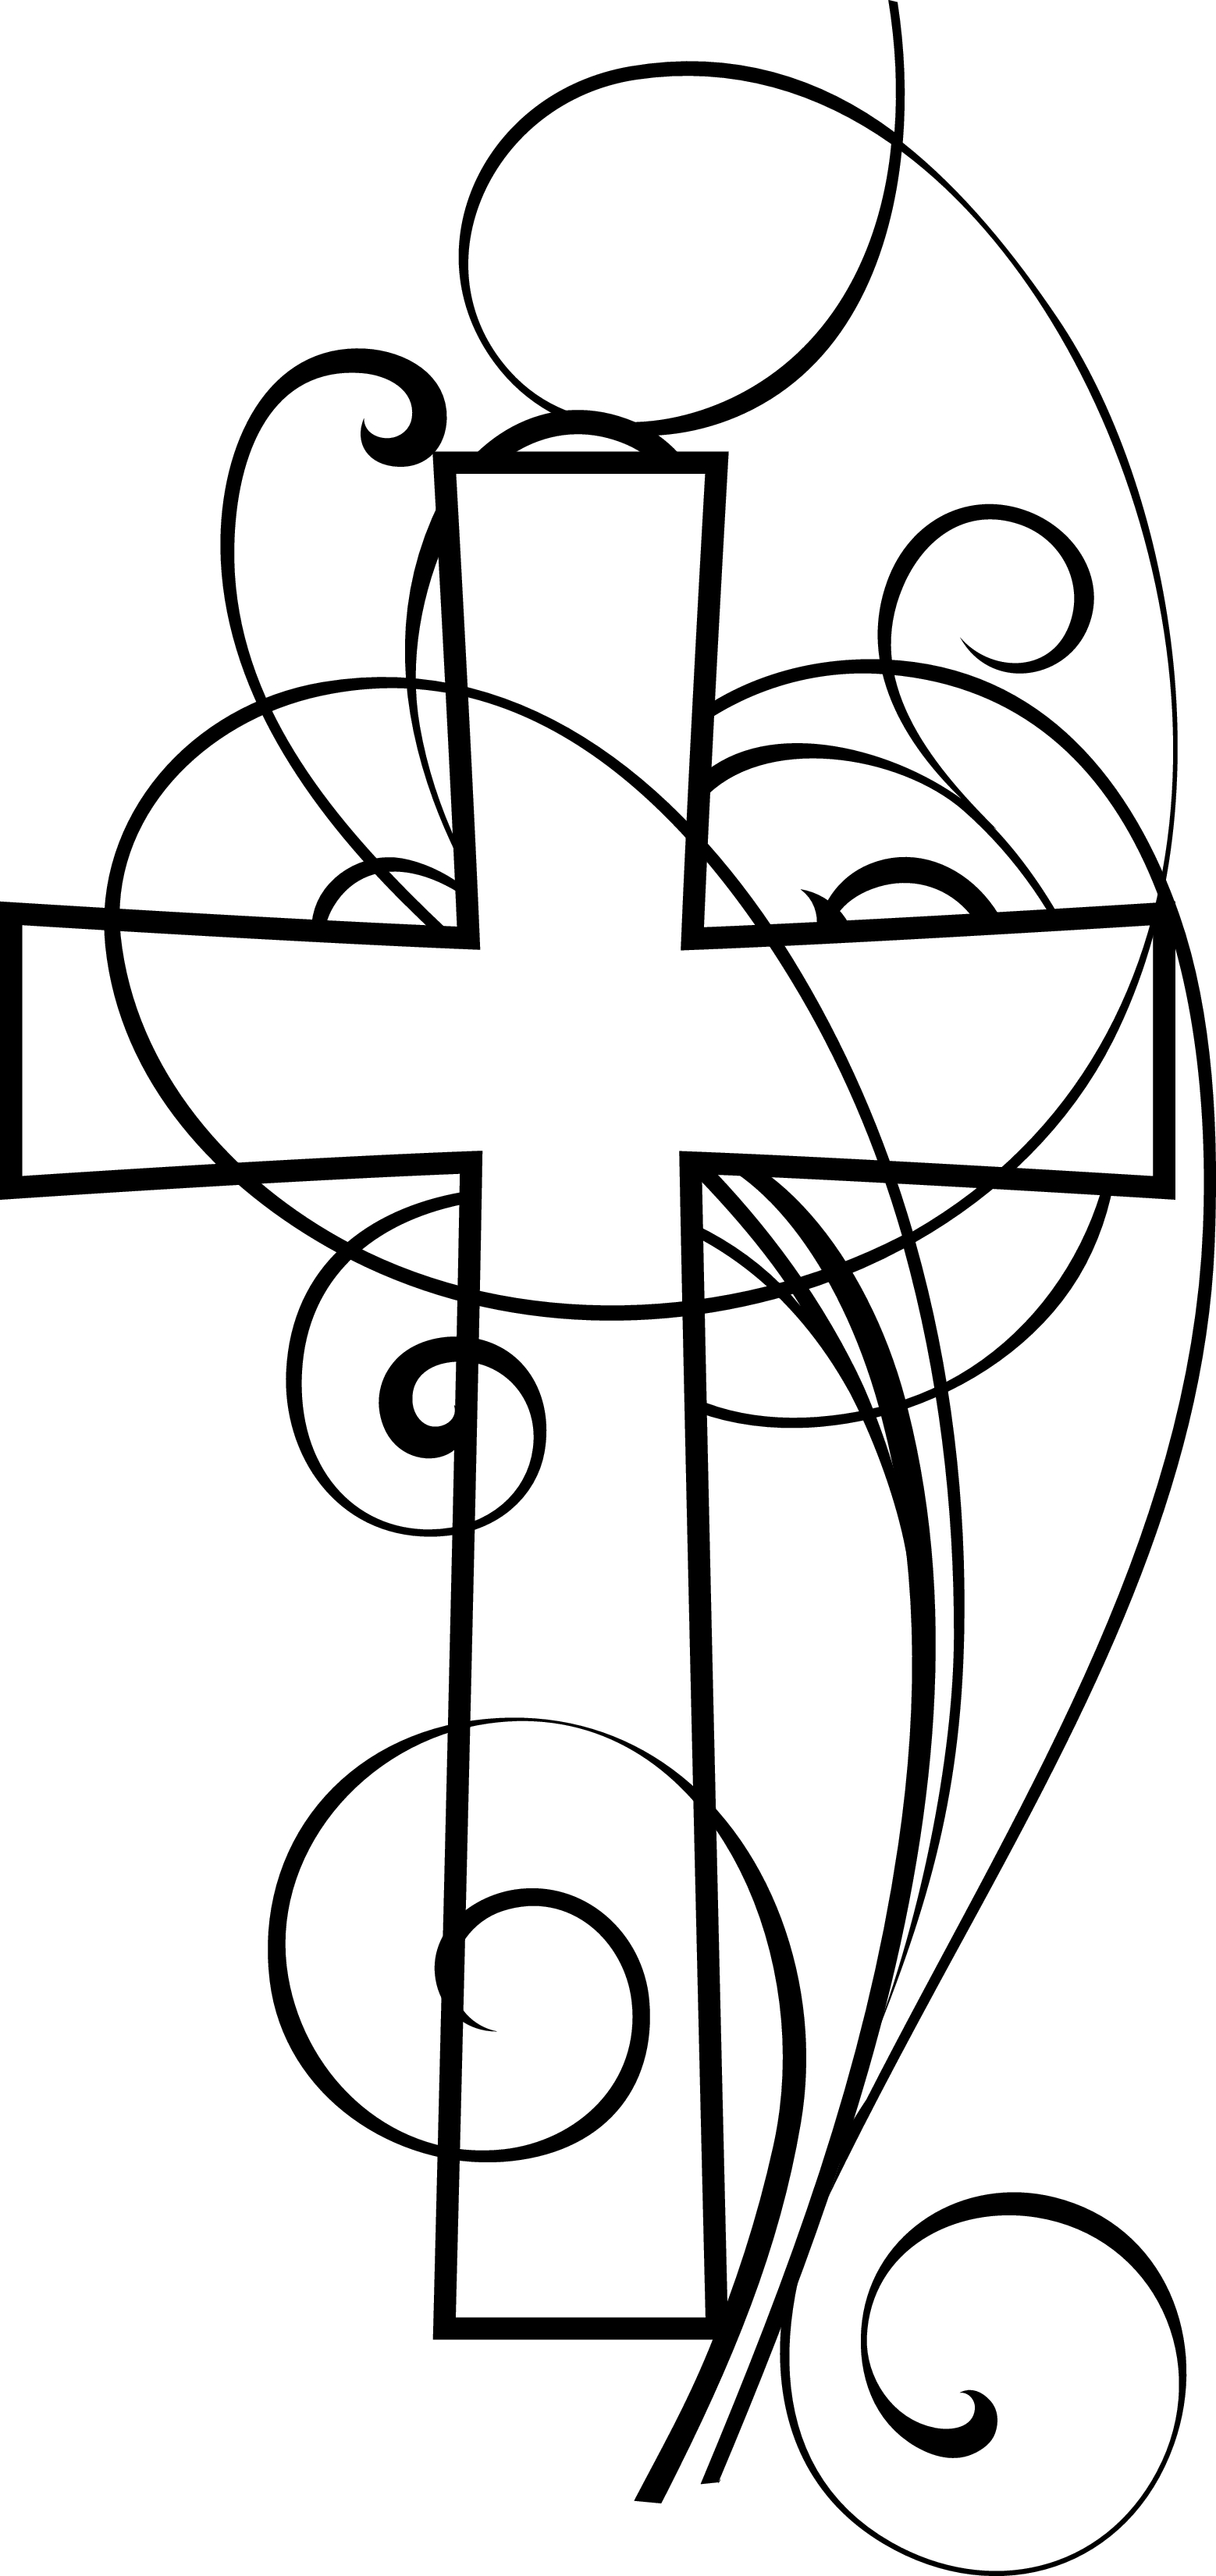 Catholic clip art borders 3